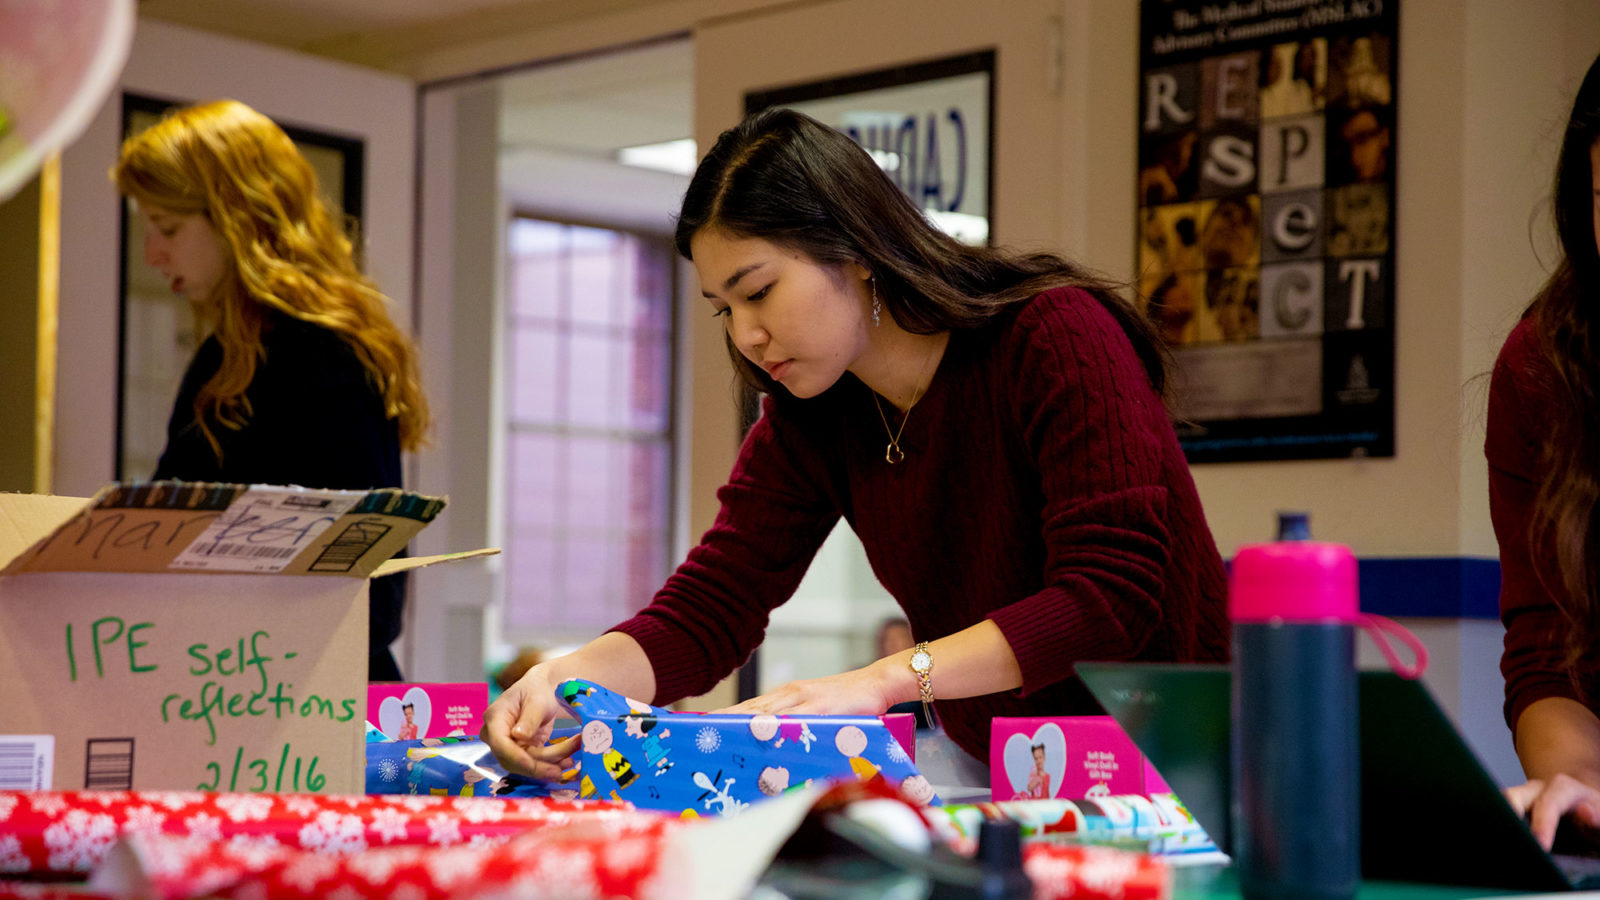 A female student wraps Christmas gifts.